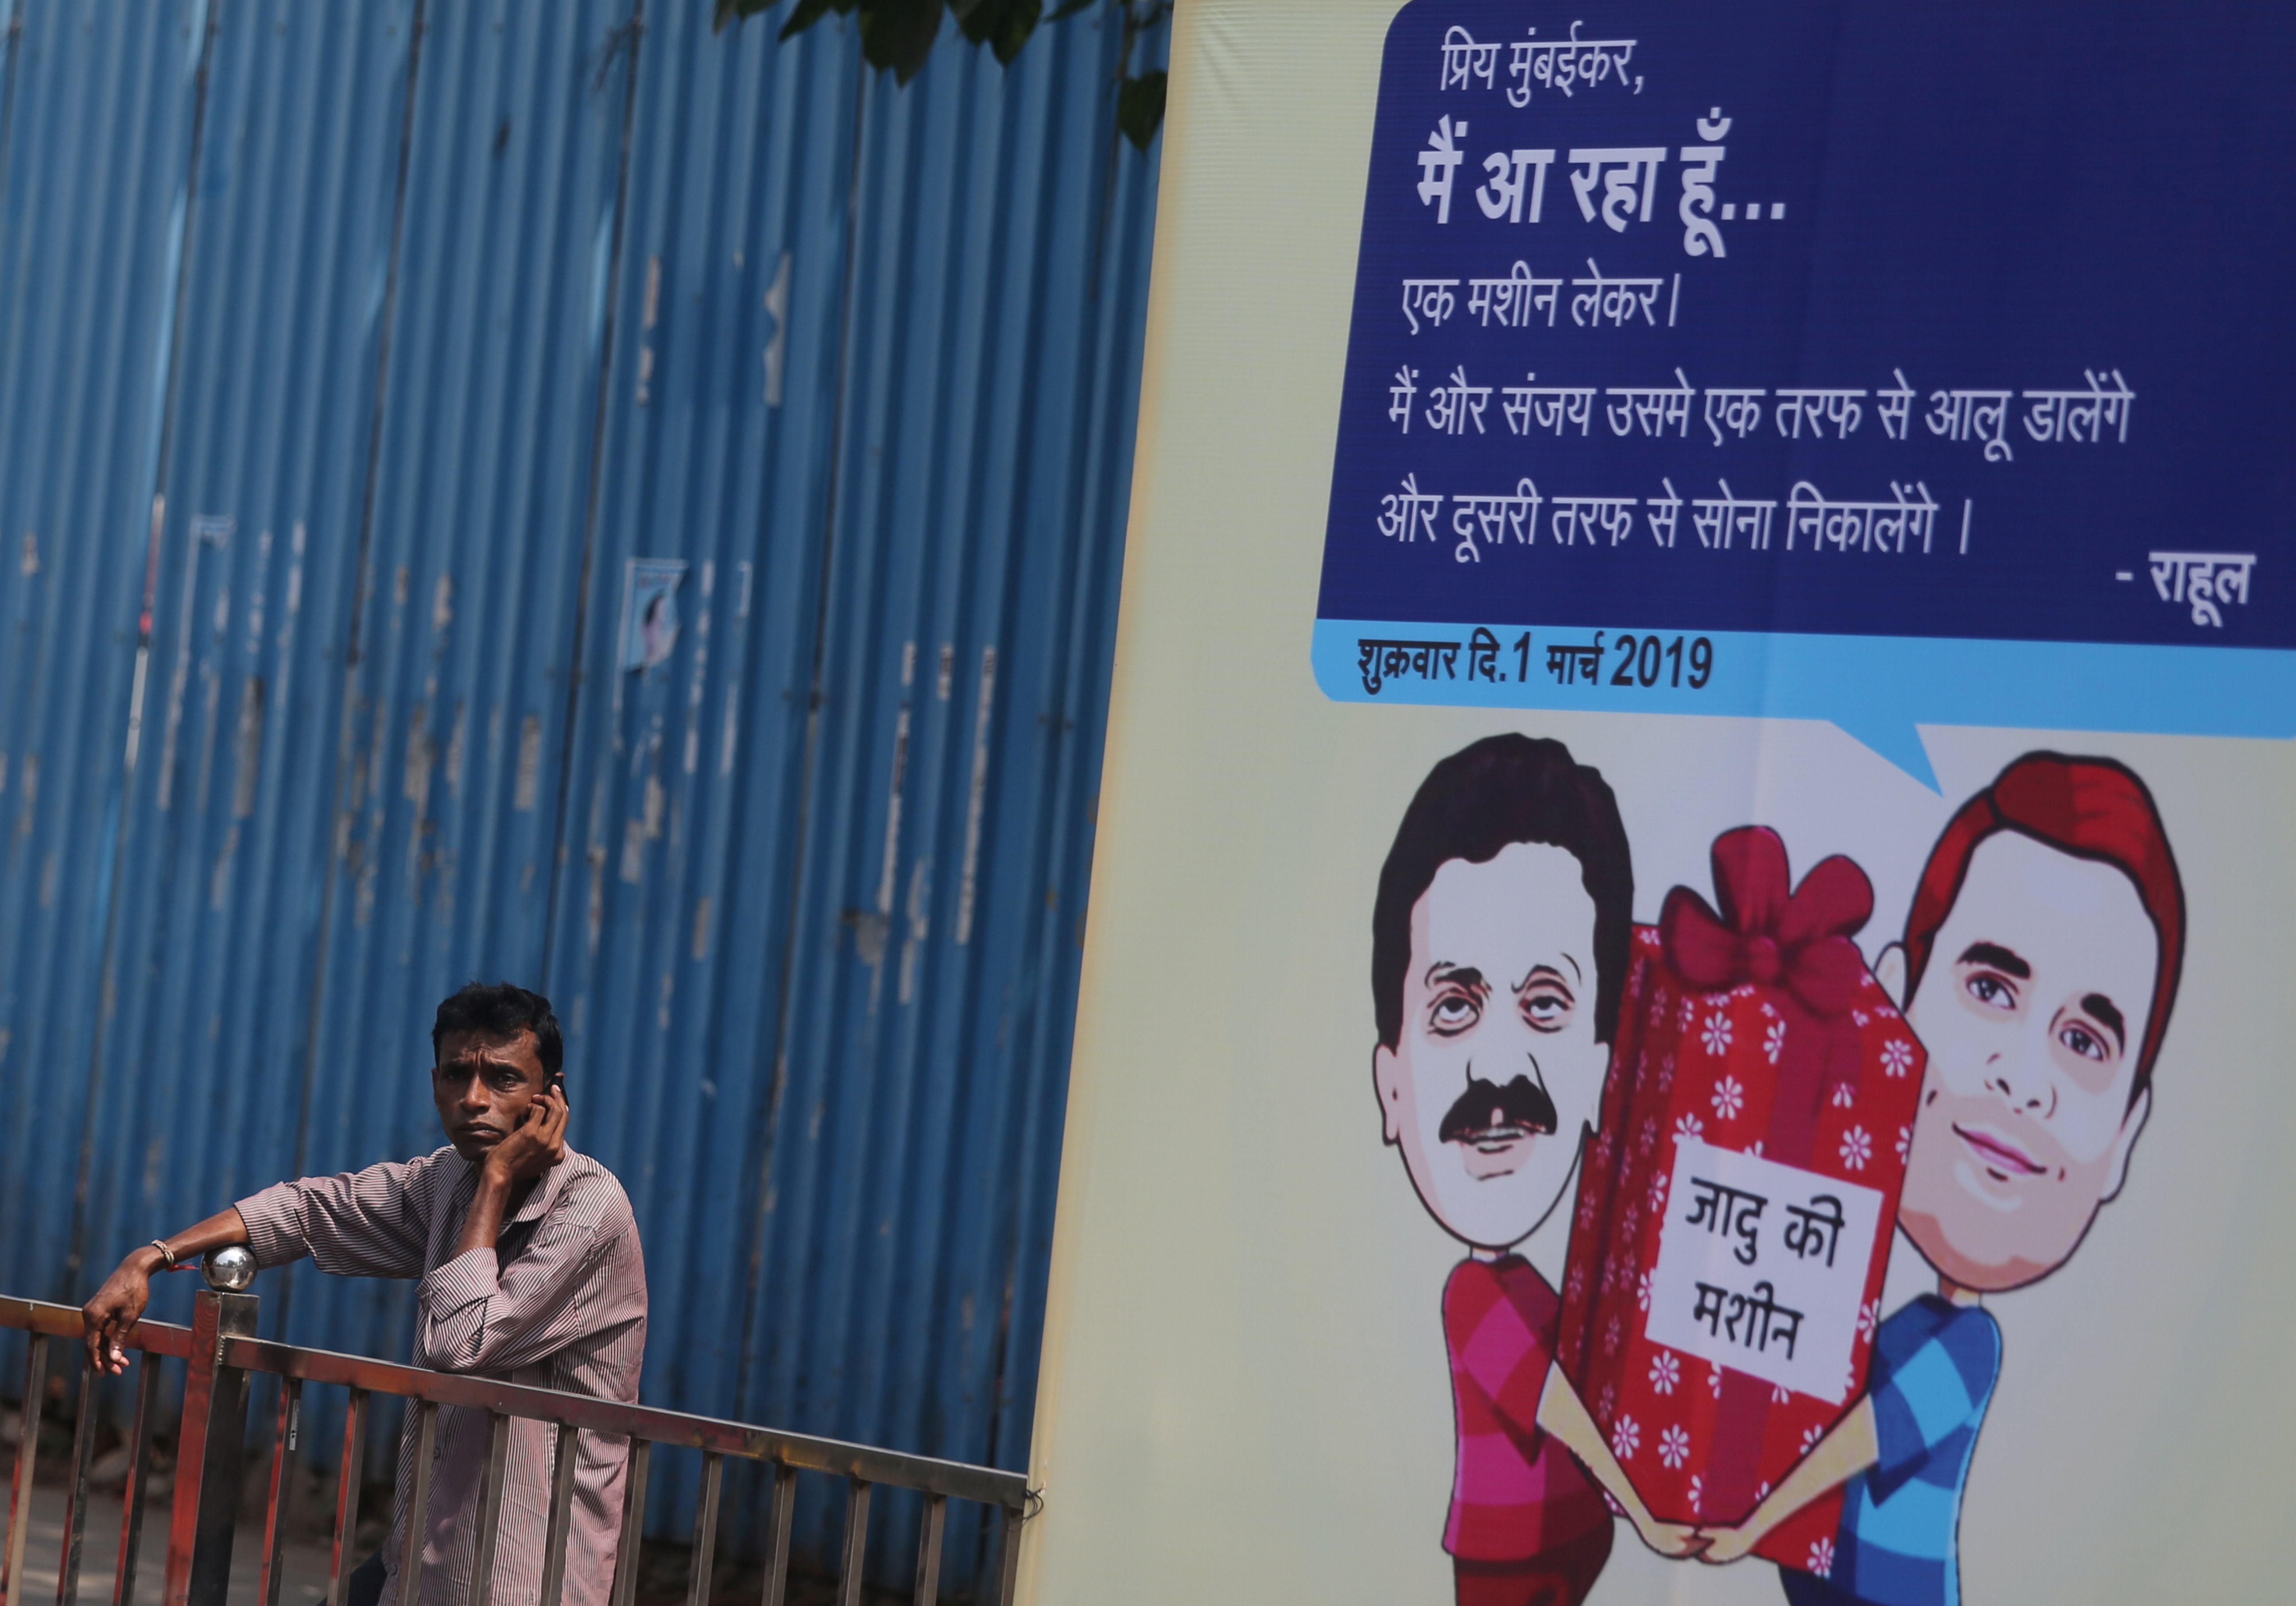 Chasing youth vote, Indian parties blitz smartphones with political